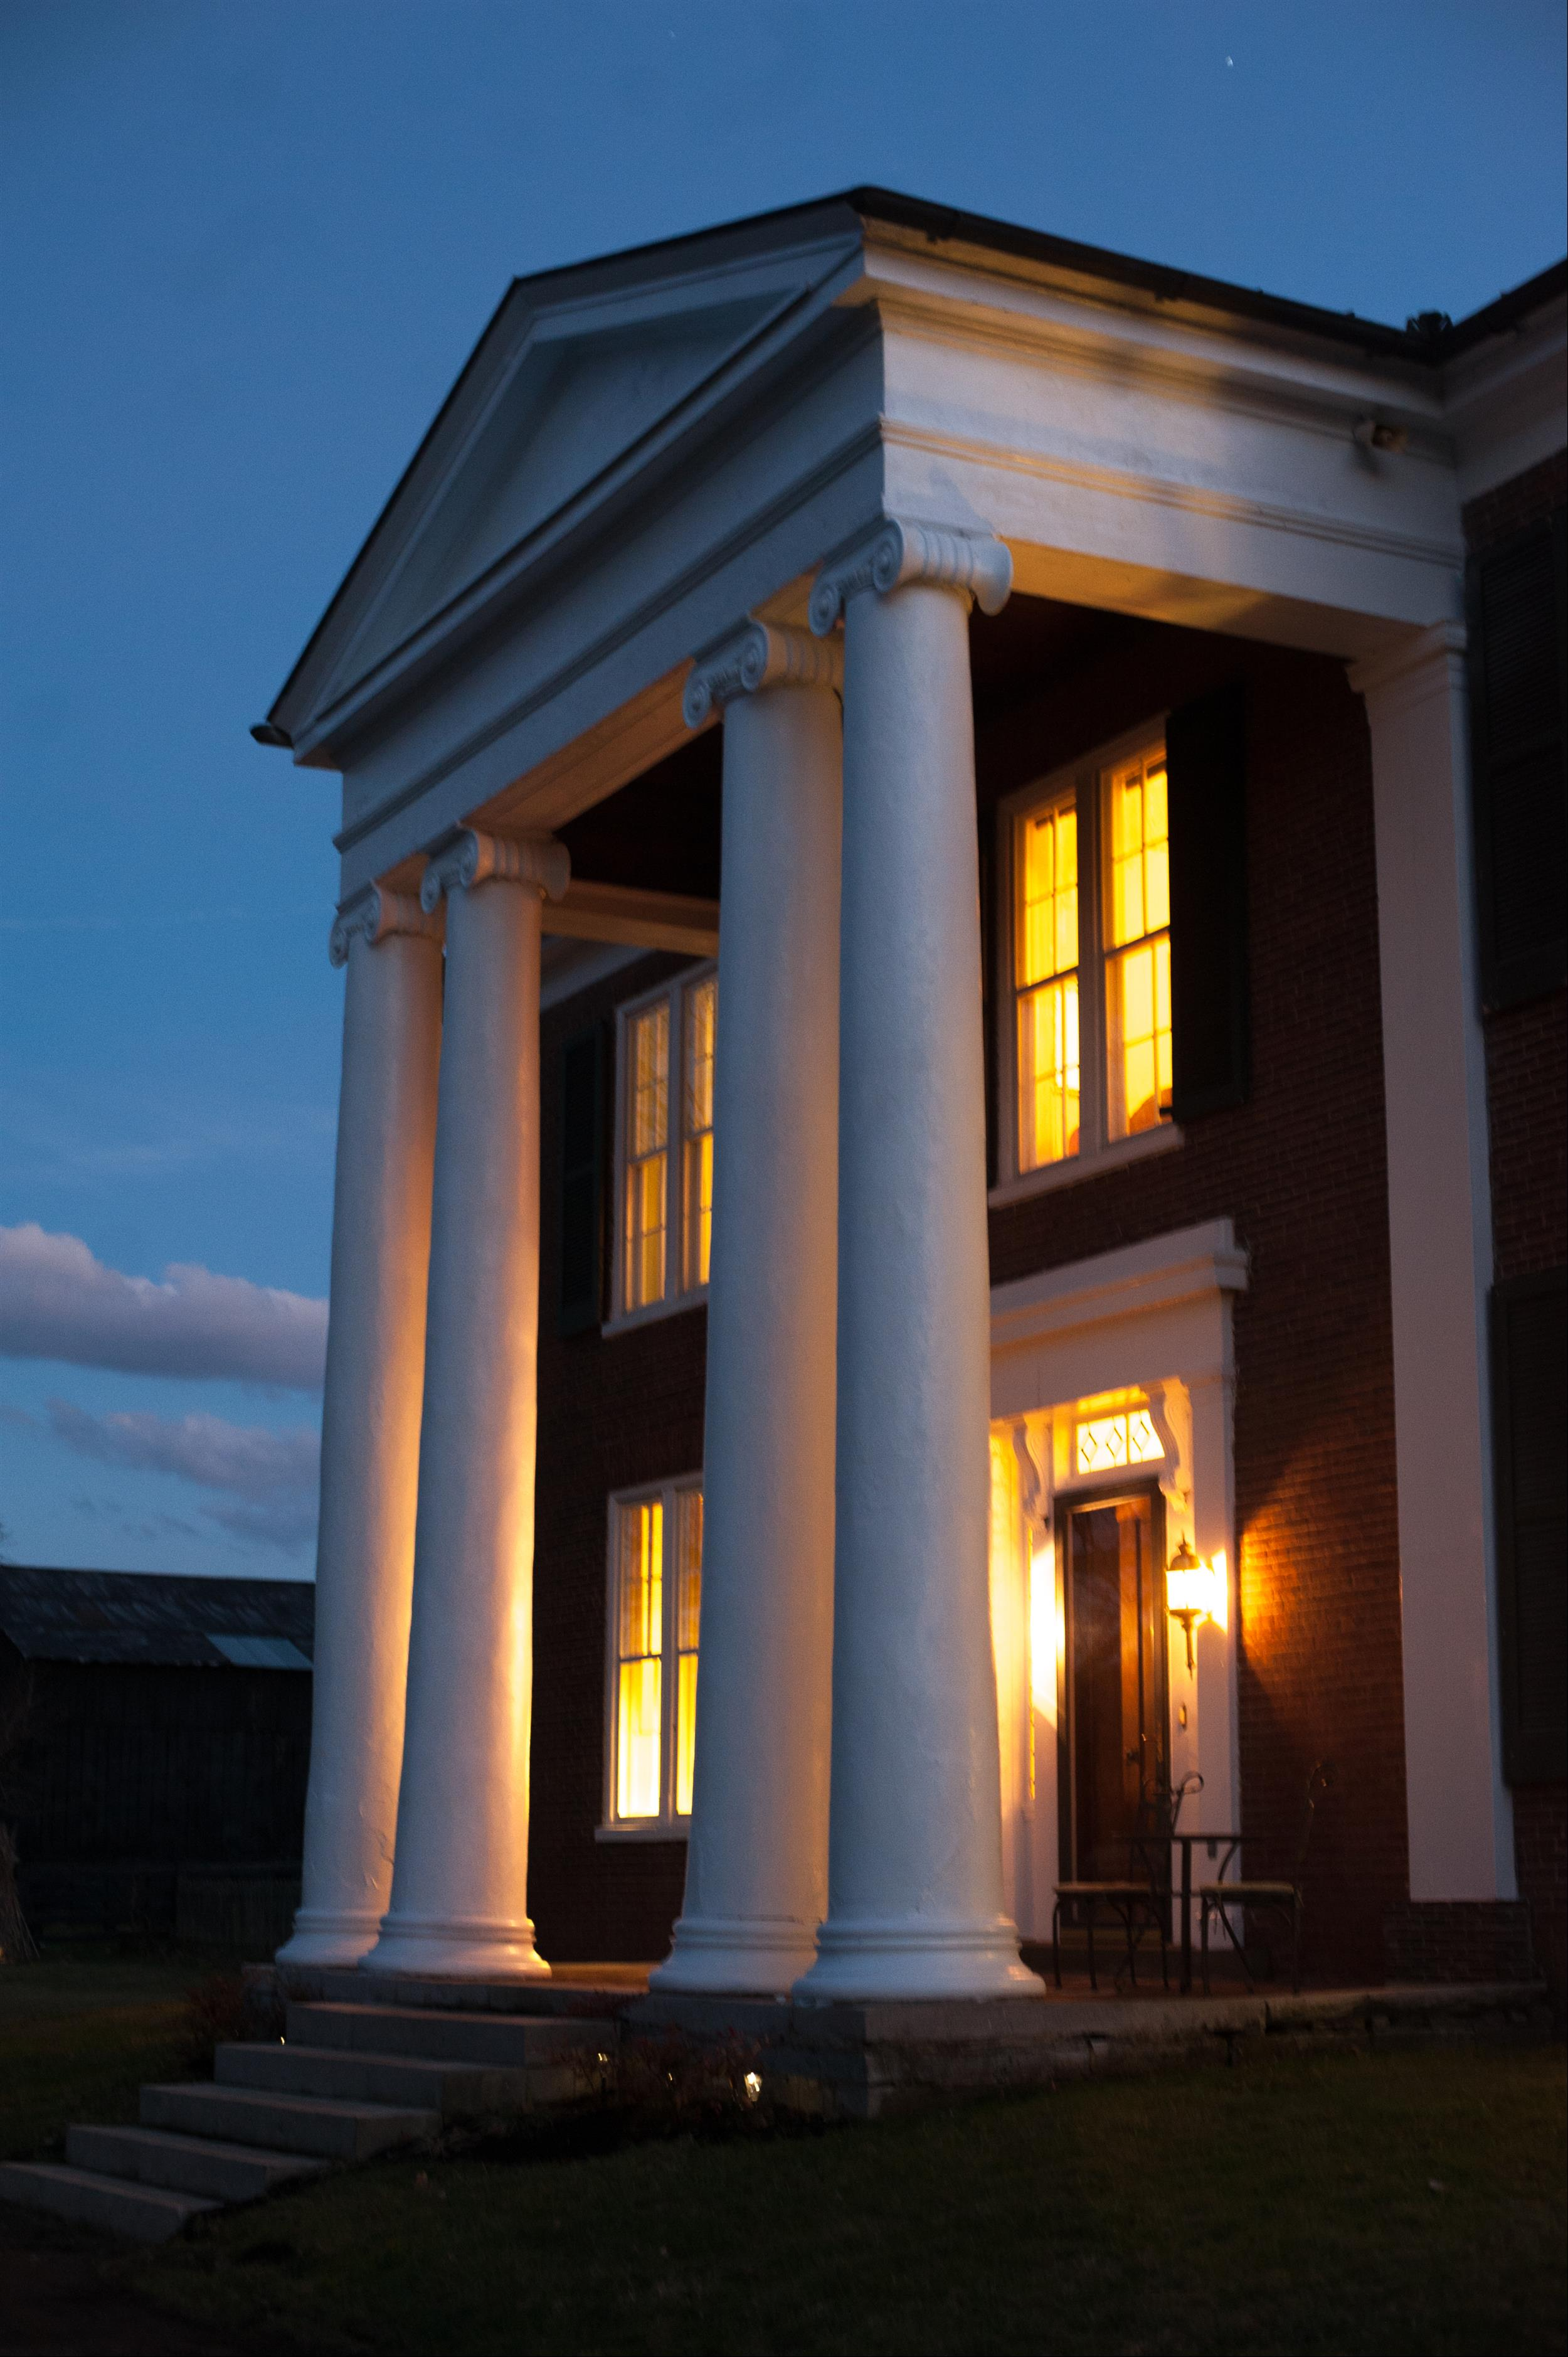 Evening view of front porch on Denny House